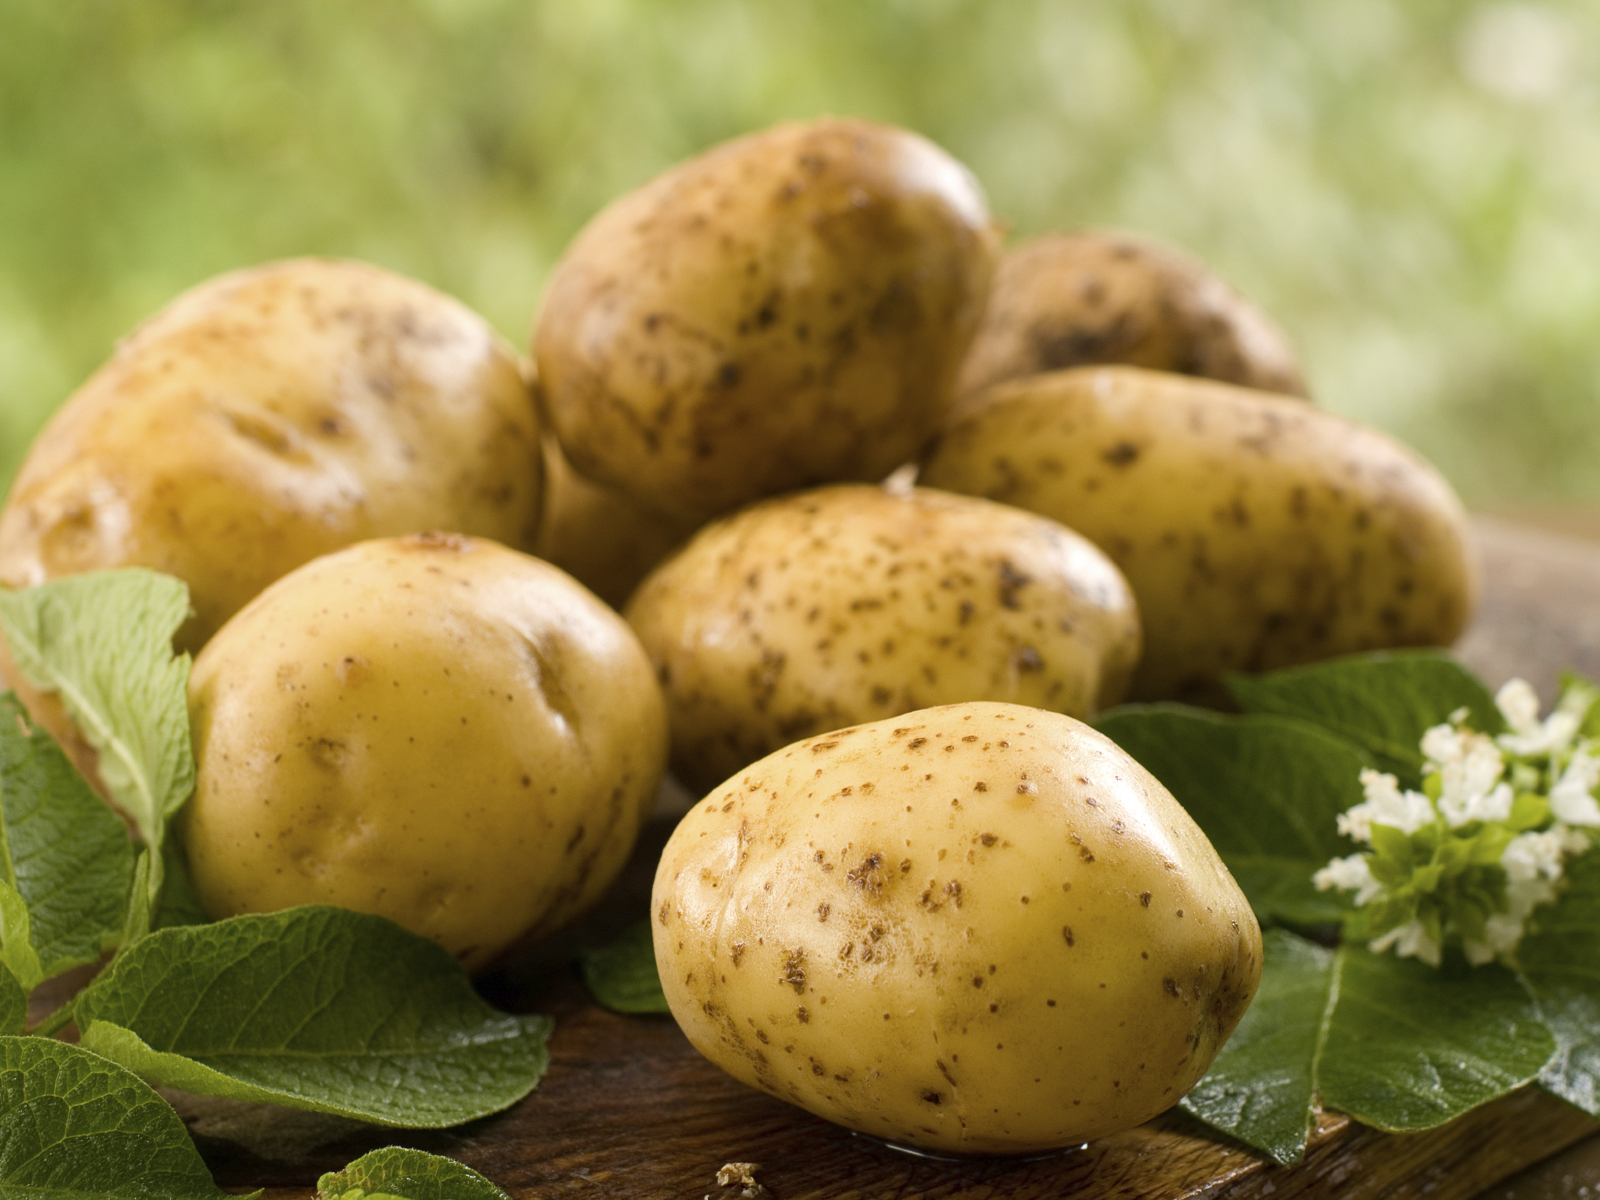 How to cook potatoes. But also some of their history